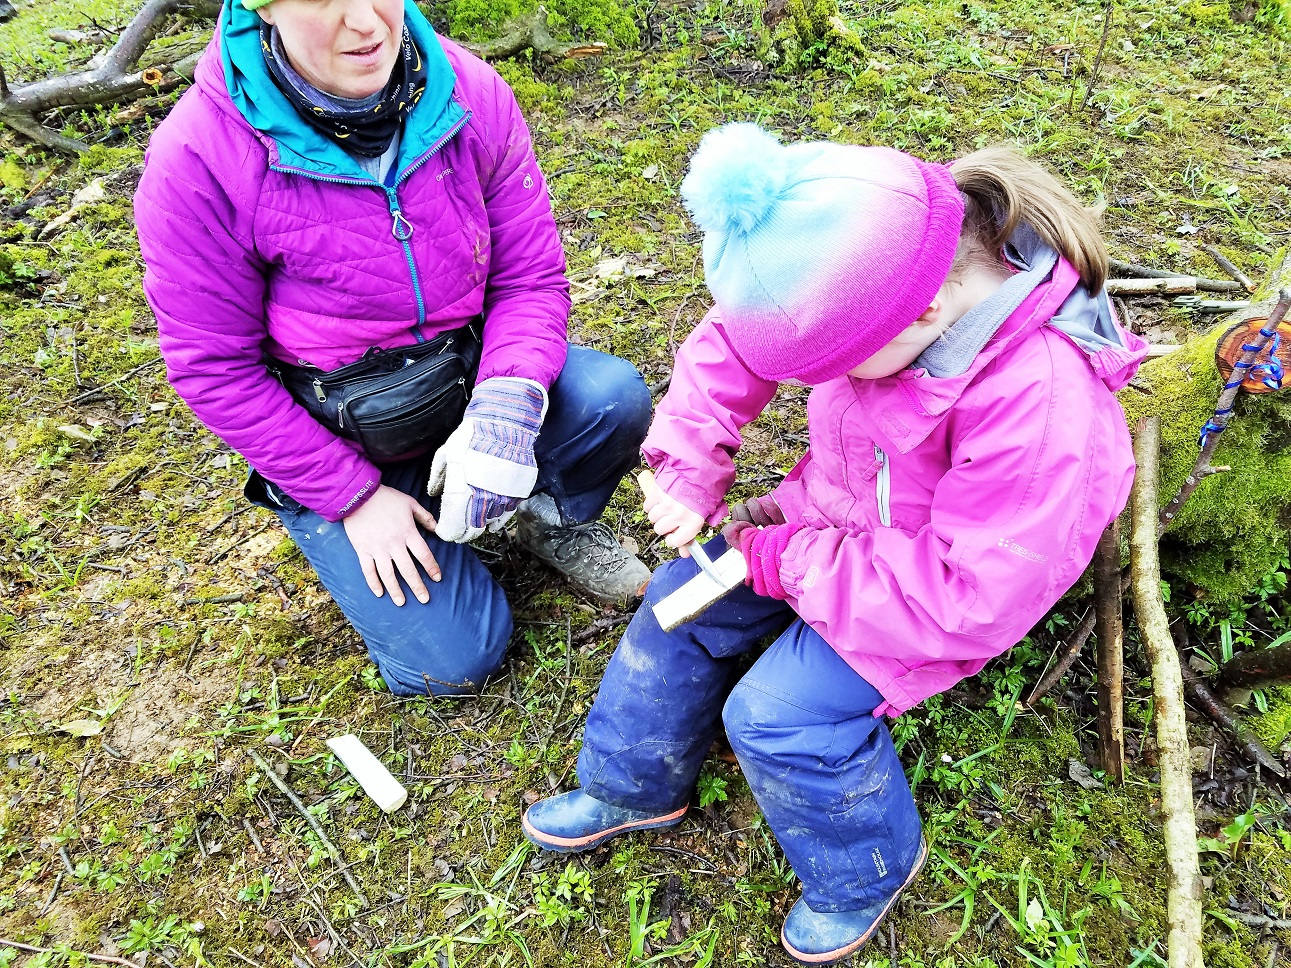 Whittling wood to make a kazoo - Yorkshire Dales Forest School